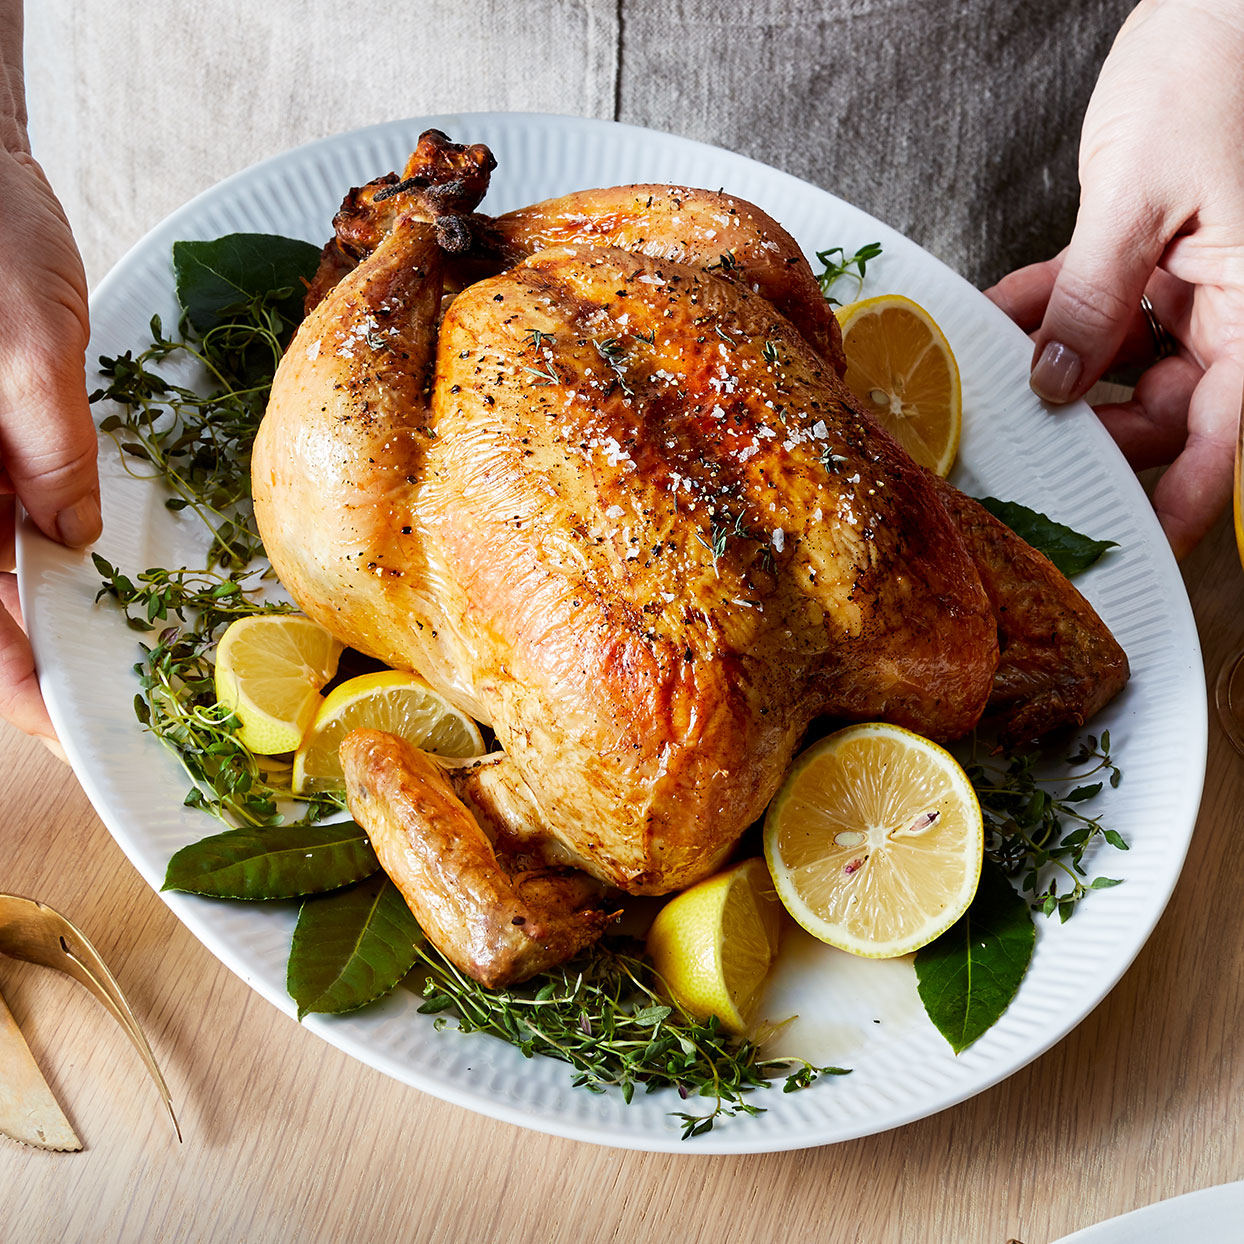 This recipe proves that learning how to roast a whole chicken can be easier (and more delicious) than you thought. For extra-crispy skin, remove the chicken from the brine, dry with paper towels and refrigerate for an additional 24 hours before roasting. Source: EatingWell Magazine, January/February 2020